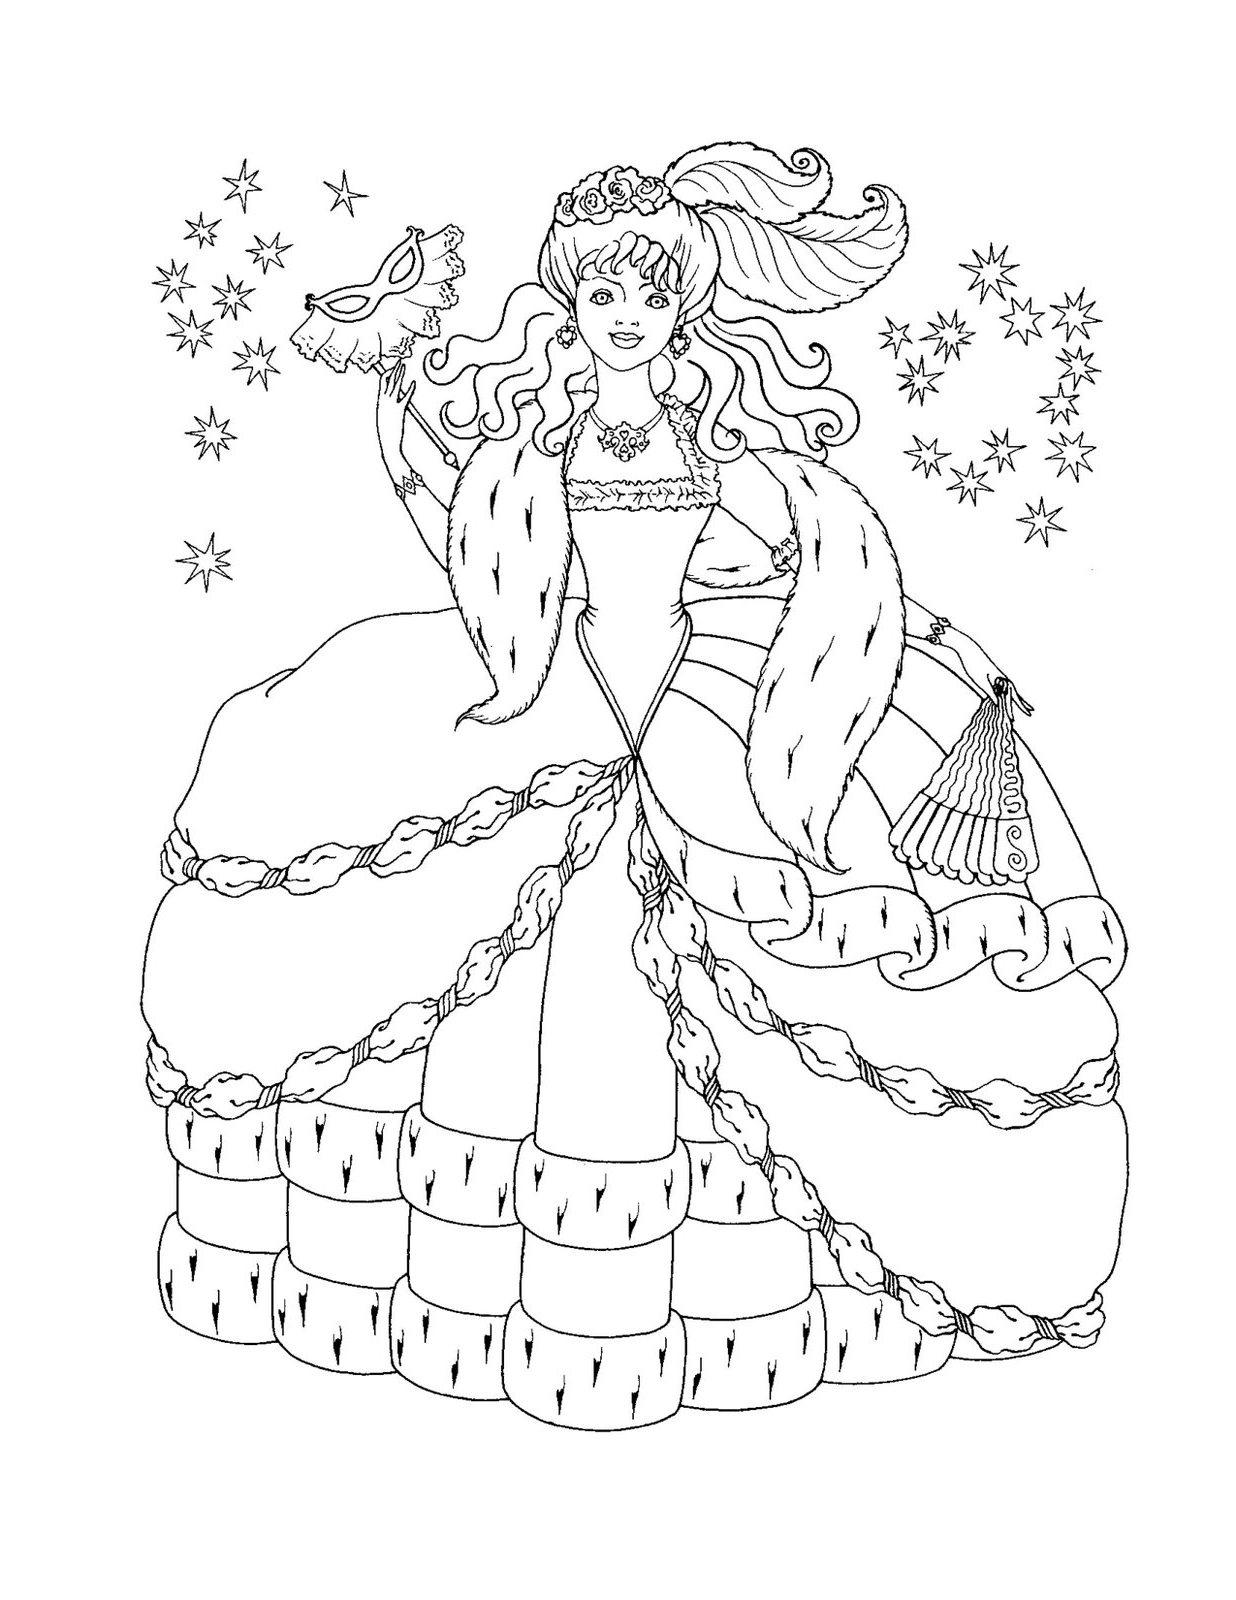 Princess jasmine colouring pages to print - Disney Princess Printables Coloring Pages